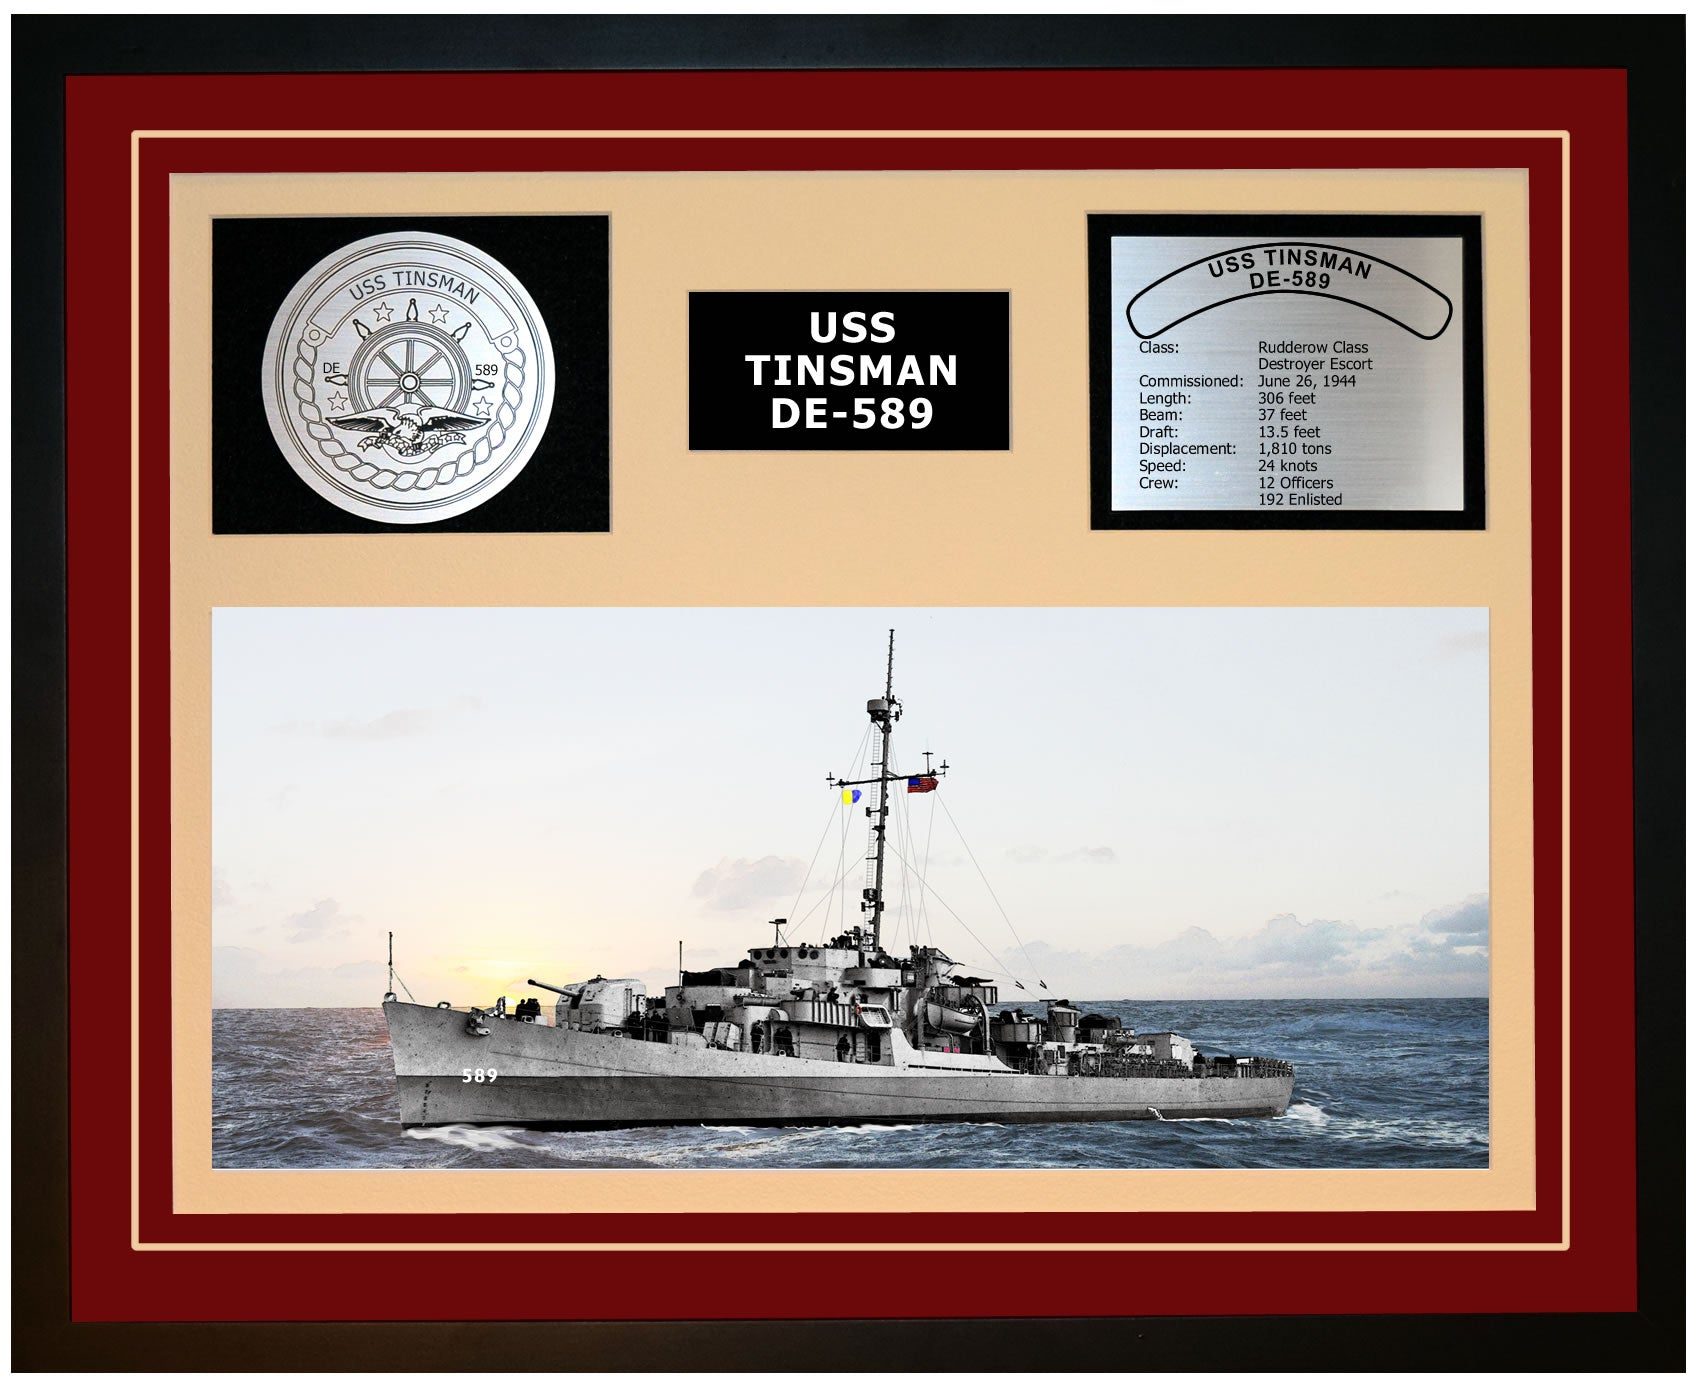 USS TINSMAN DE-589 Framed Navy Ship Display Burgundy